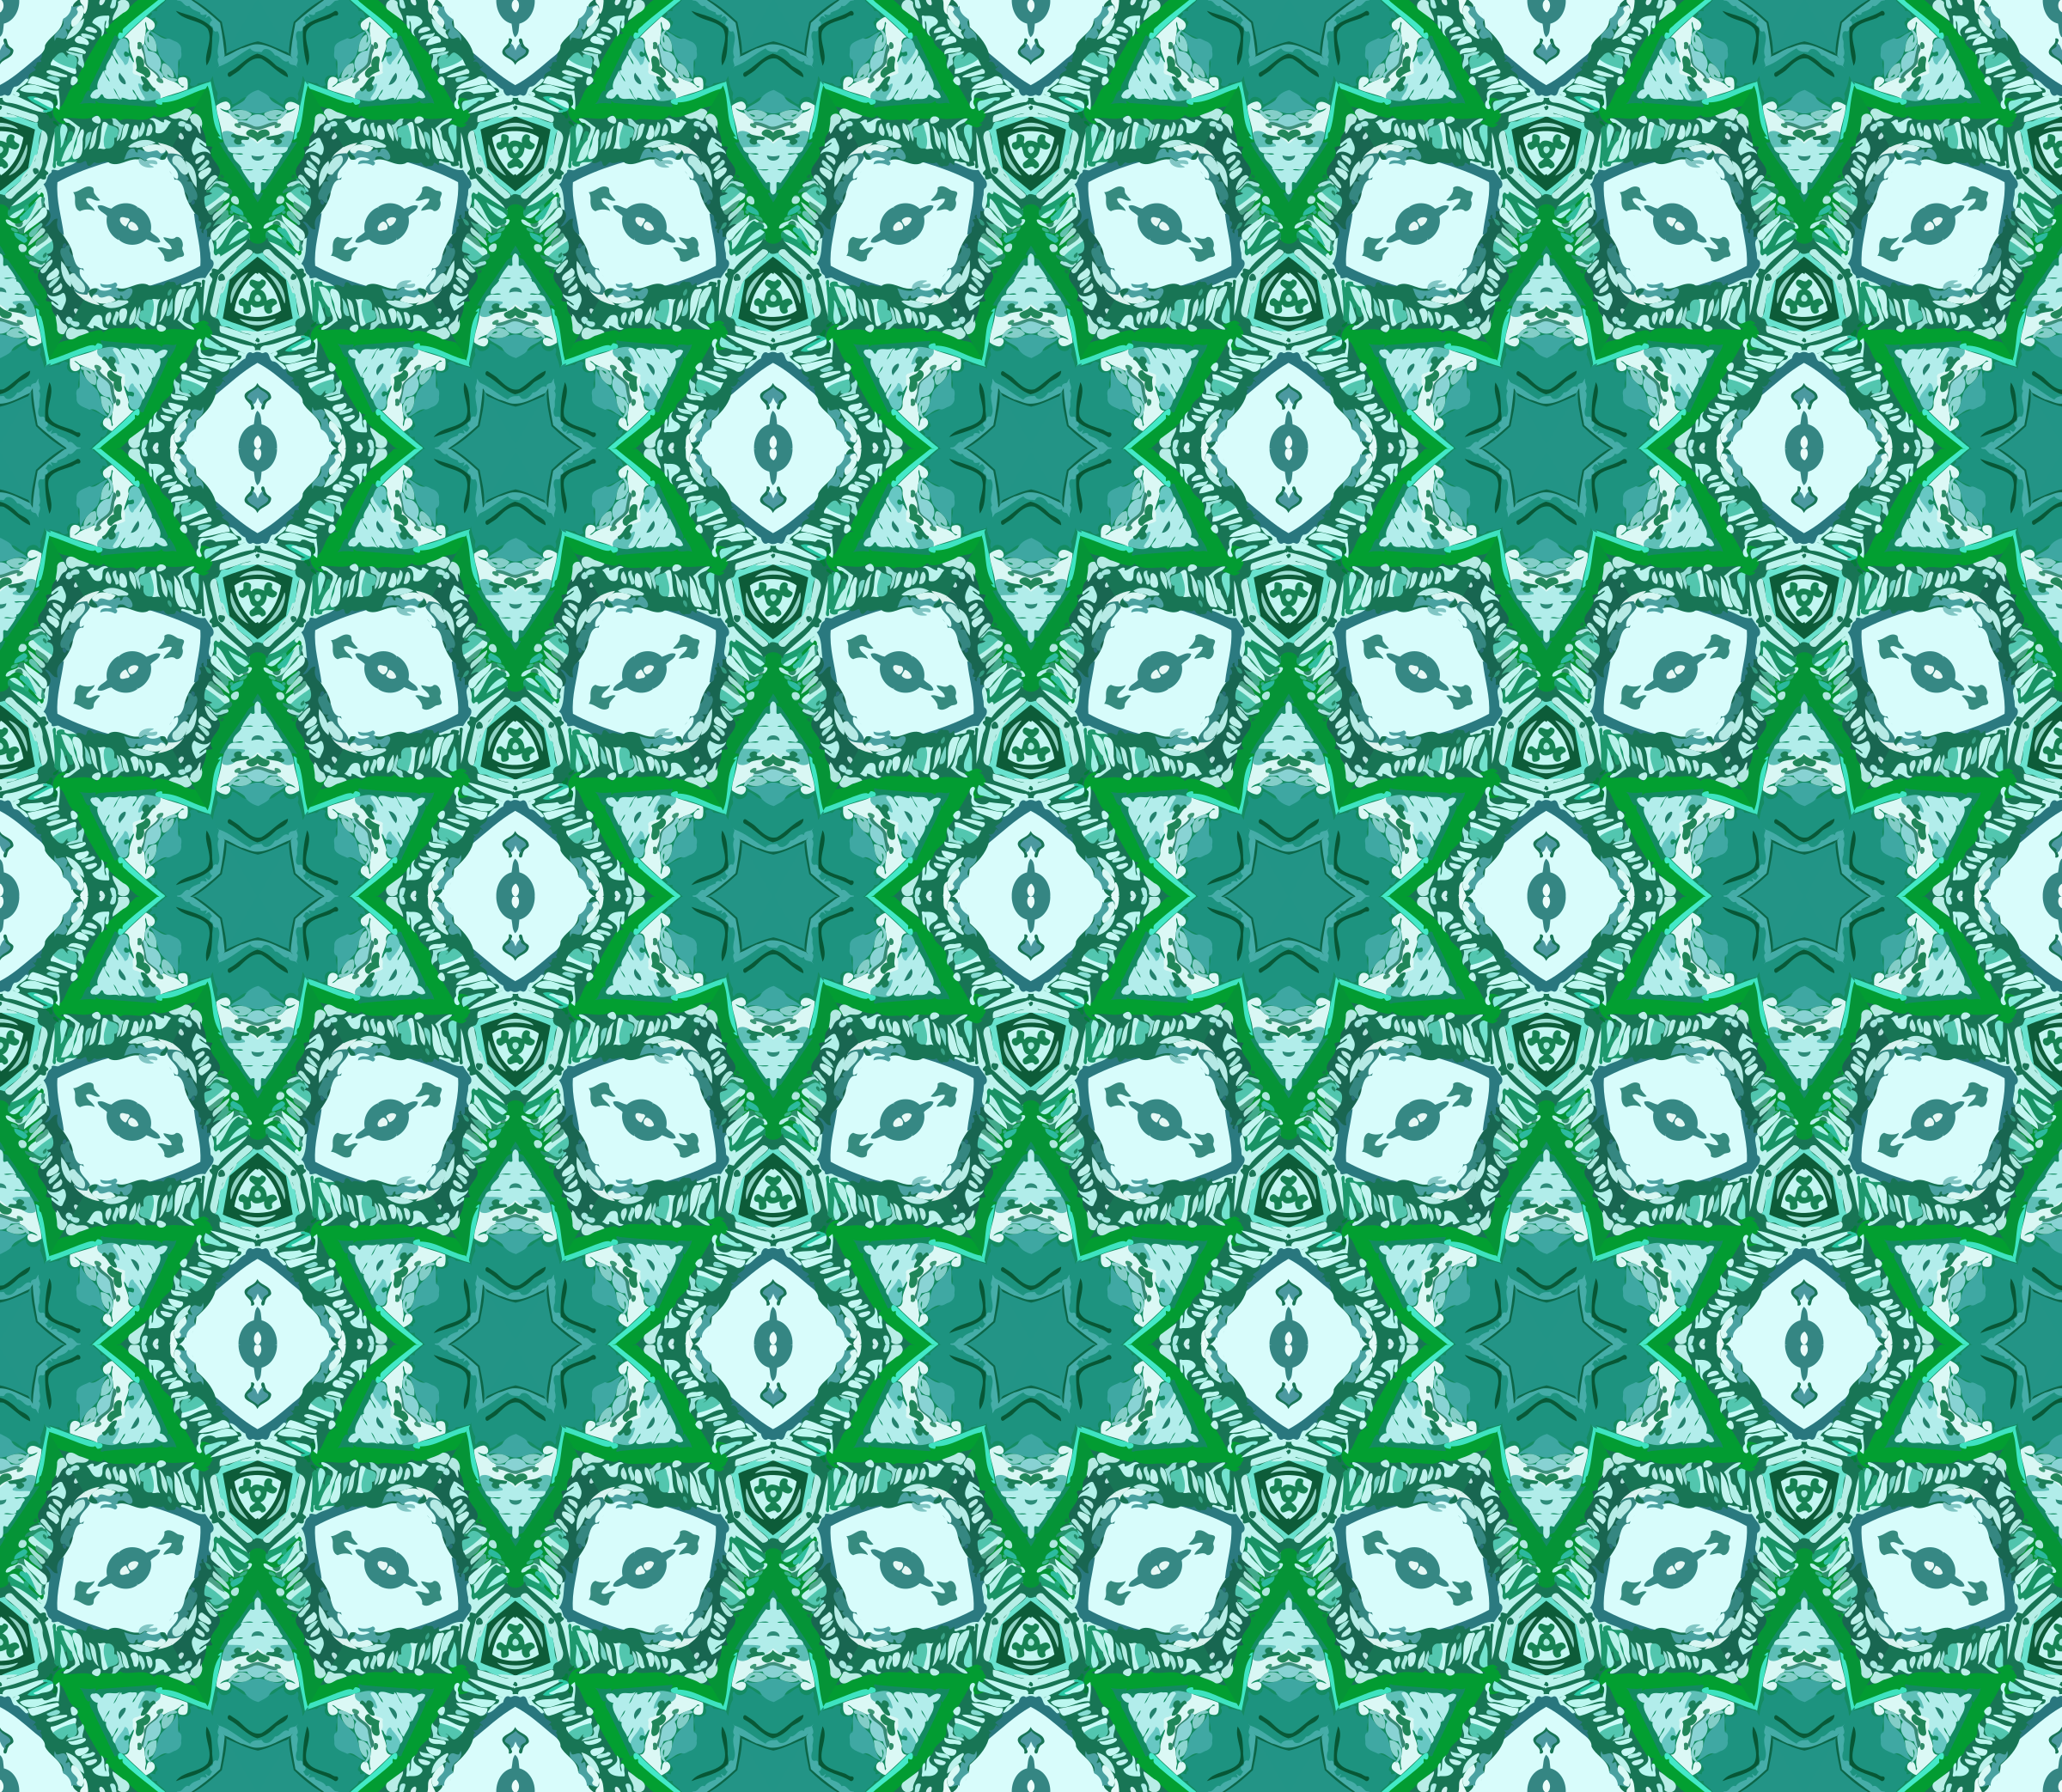 Background pattern 153 (colour 2) by Firkin